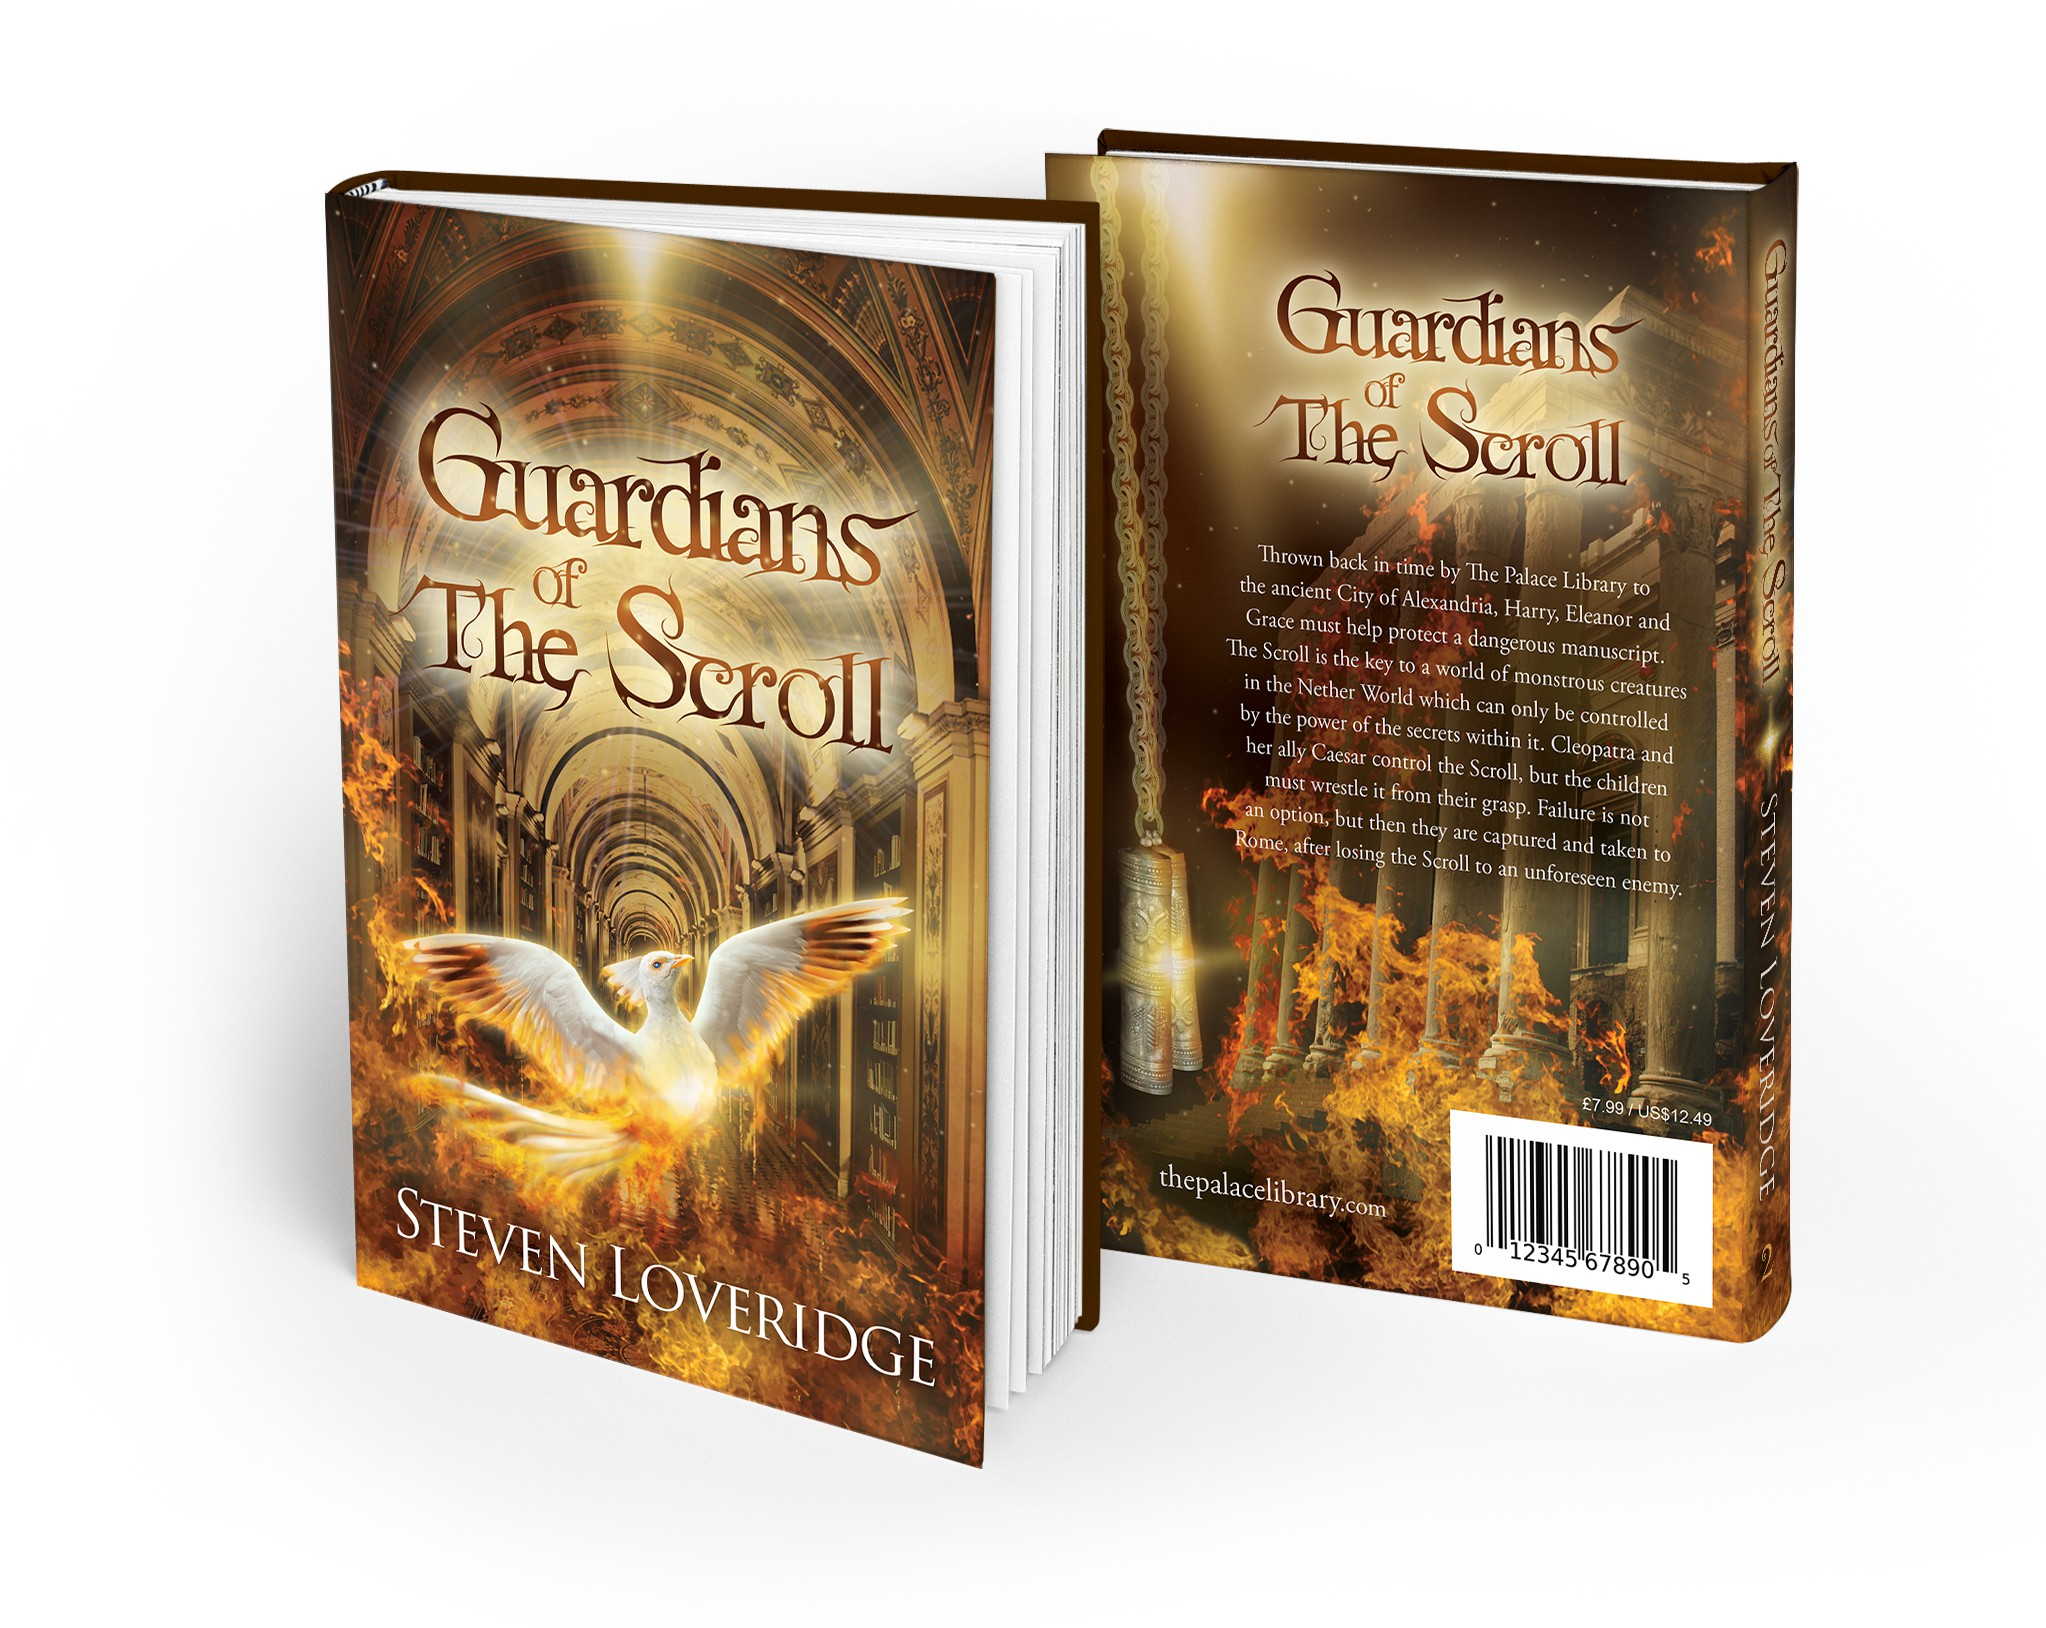 Childrens book cover design for Guardians of The Scroll by Steven Loveridge